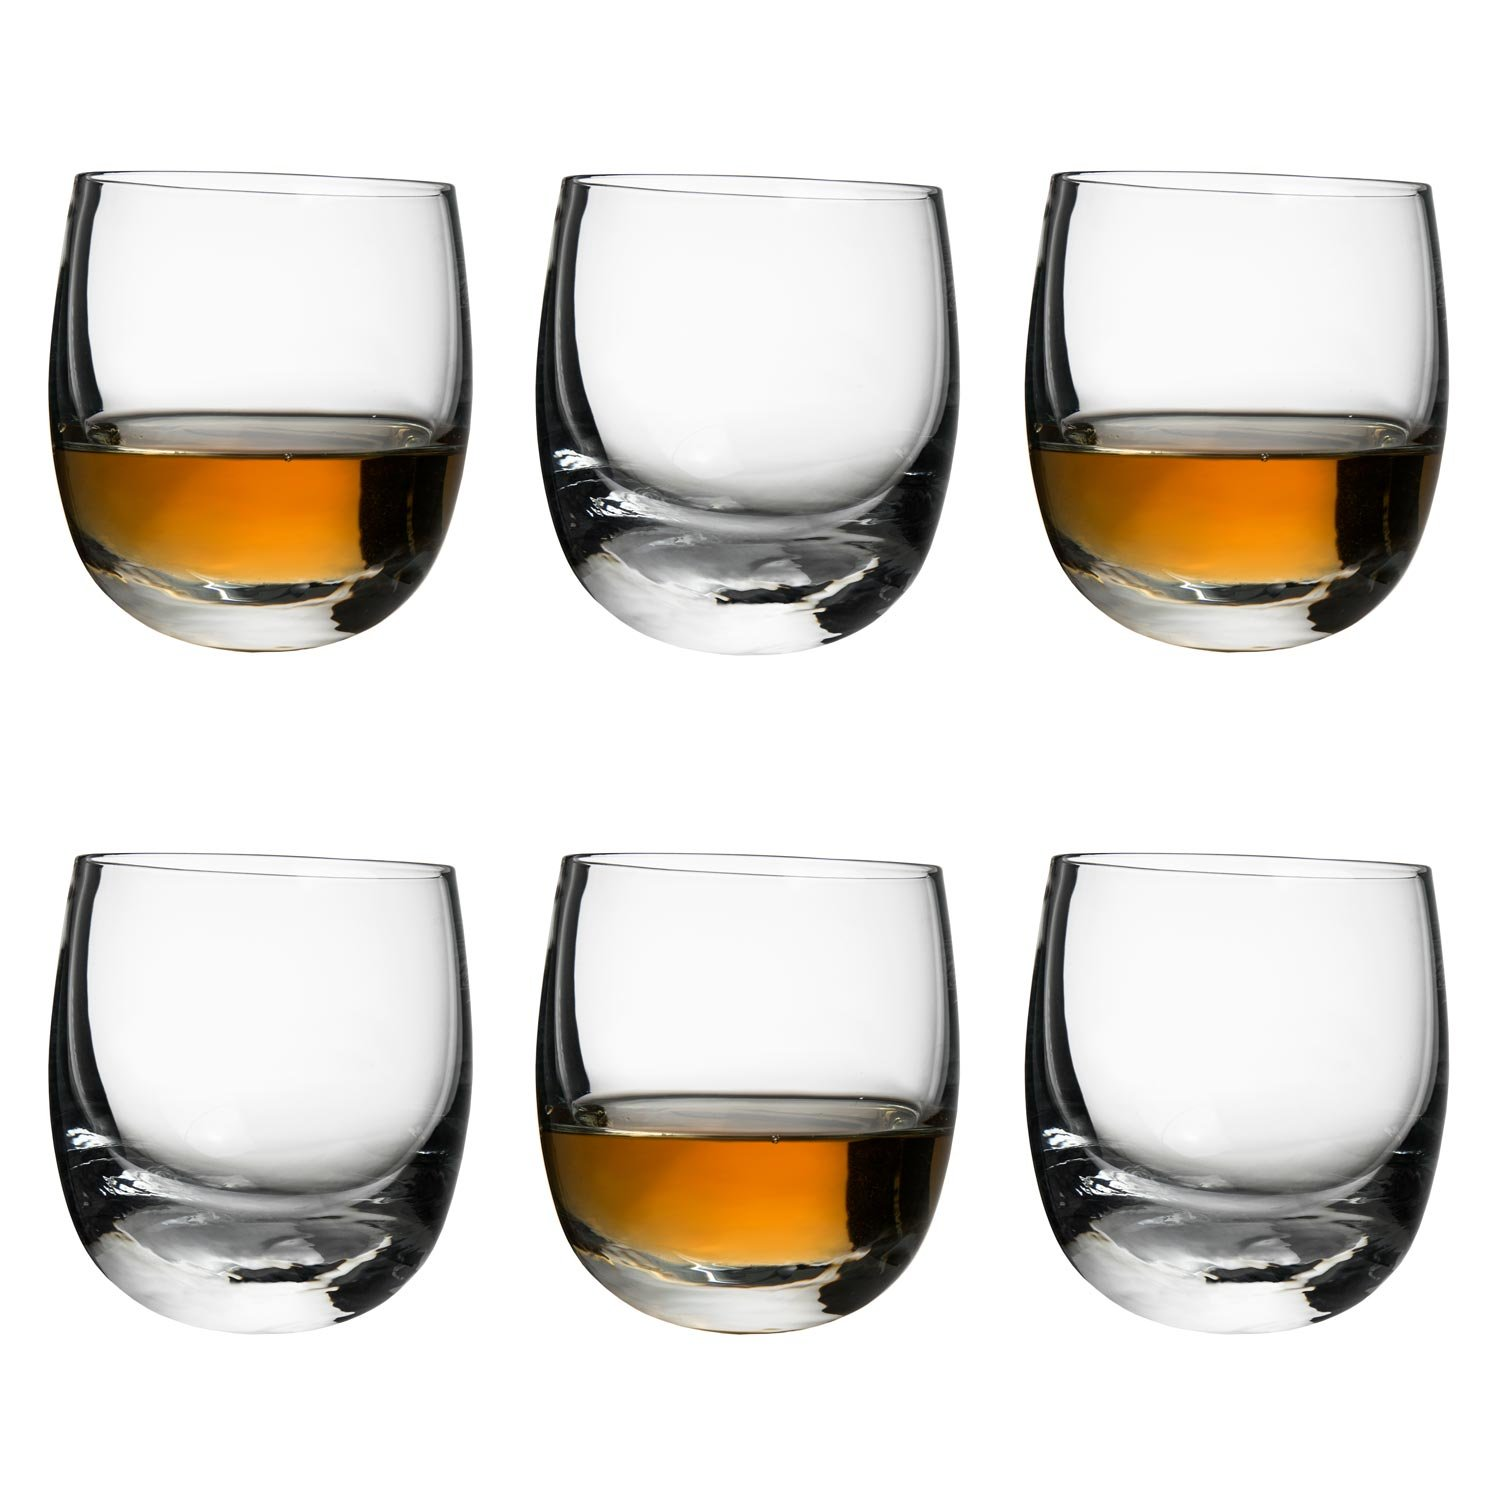 Sagaform Rocking Whiskey Glasses Set of 6 in a gift box Round Base Whisky Glass